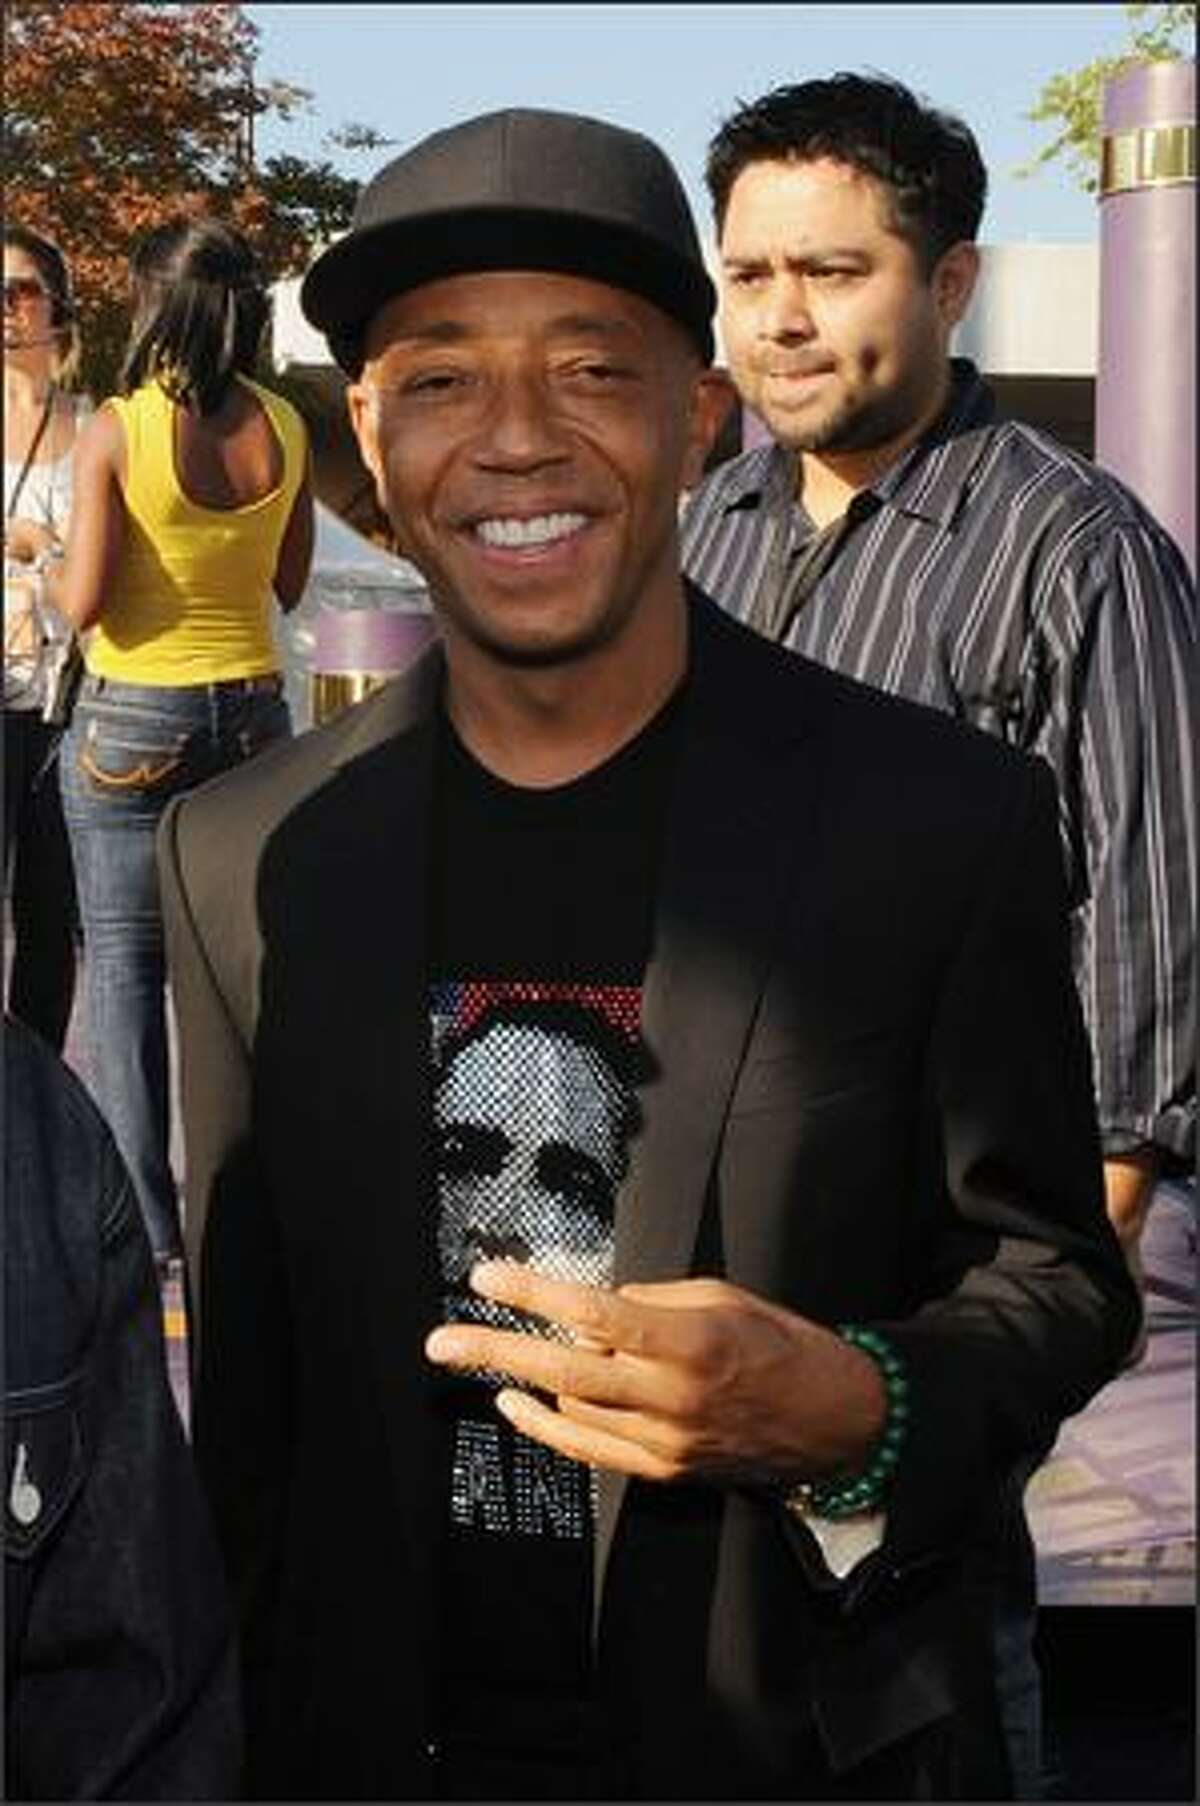 Russell Simmons attends the 2008 BET Hip-Hop Awards at The Boisfeuillet Jones Atlanta Civic Center on Saturday in Atlanta, Georgia.